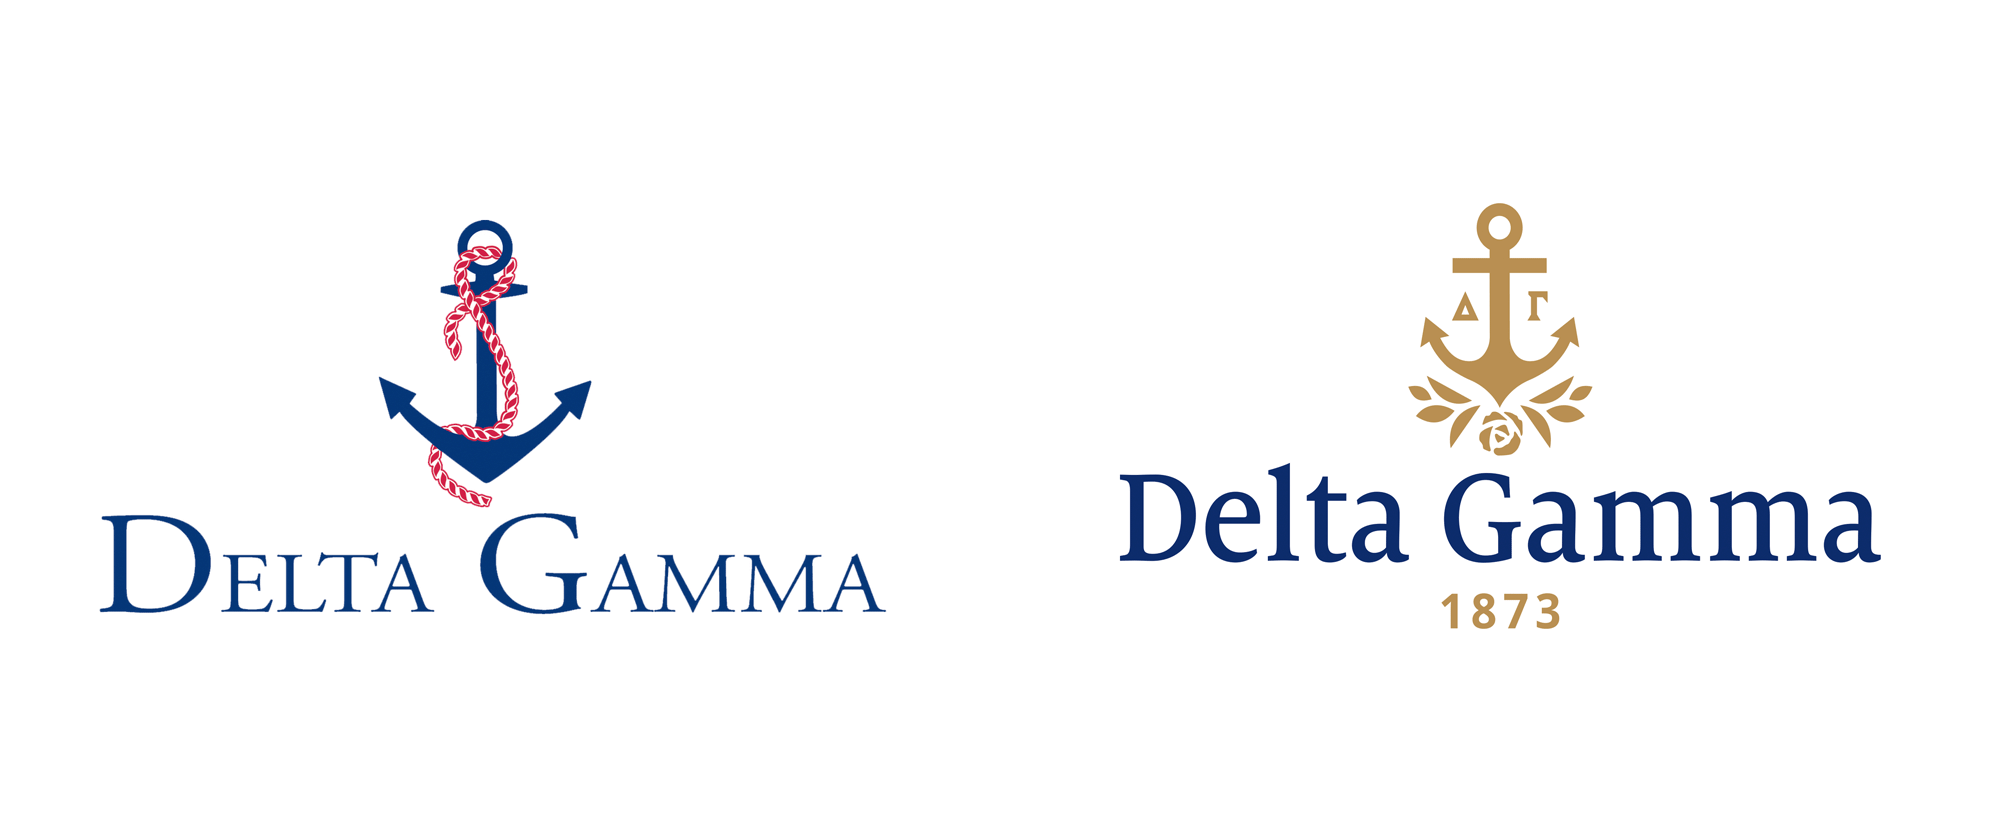 New Logo and Identity for Delta Gamma by Ologie